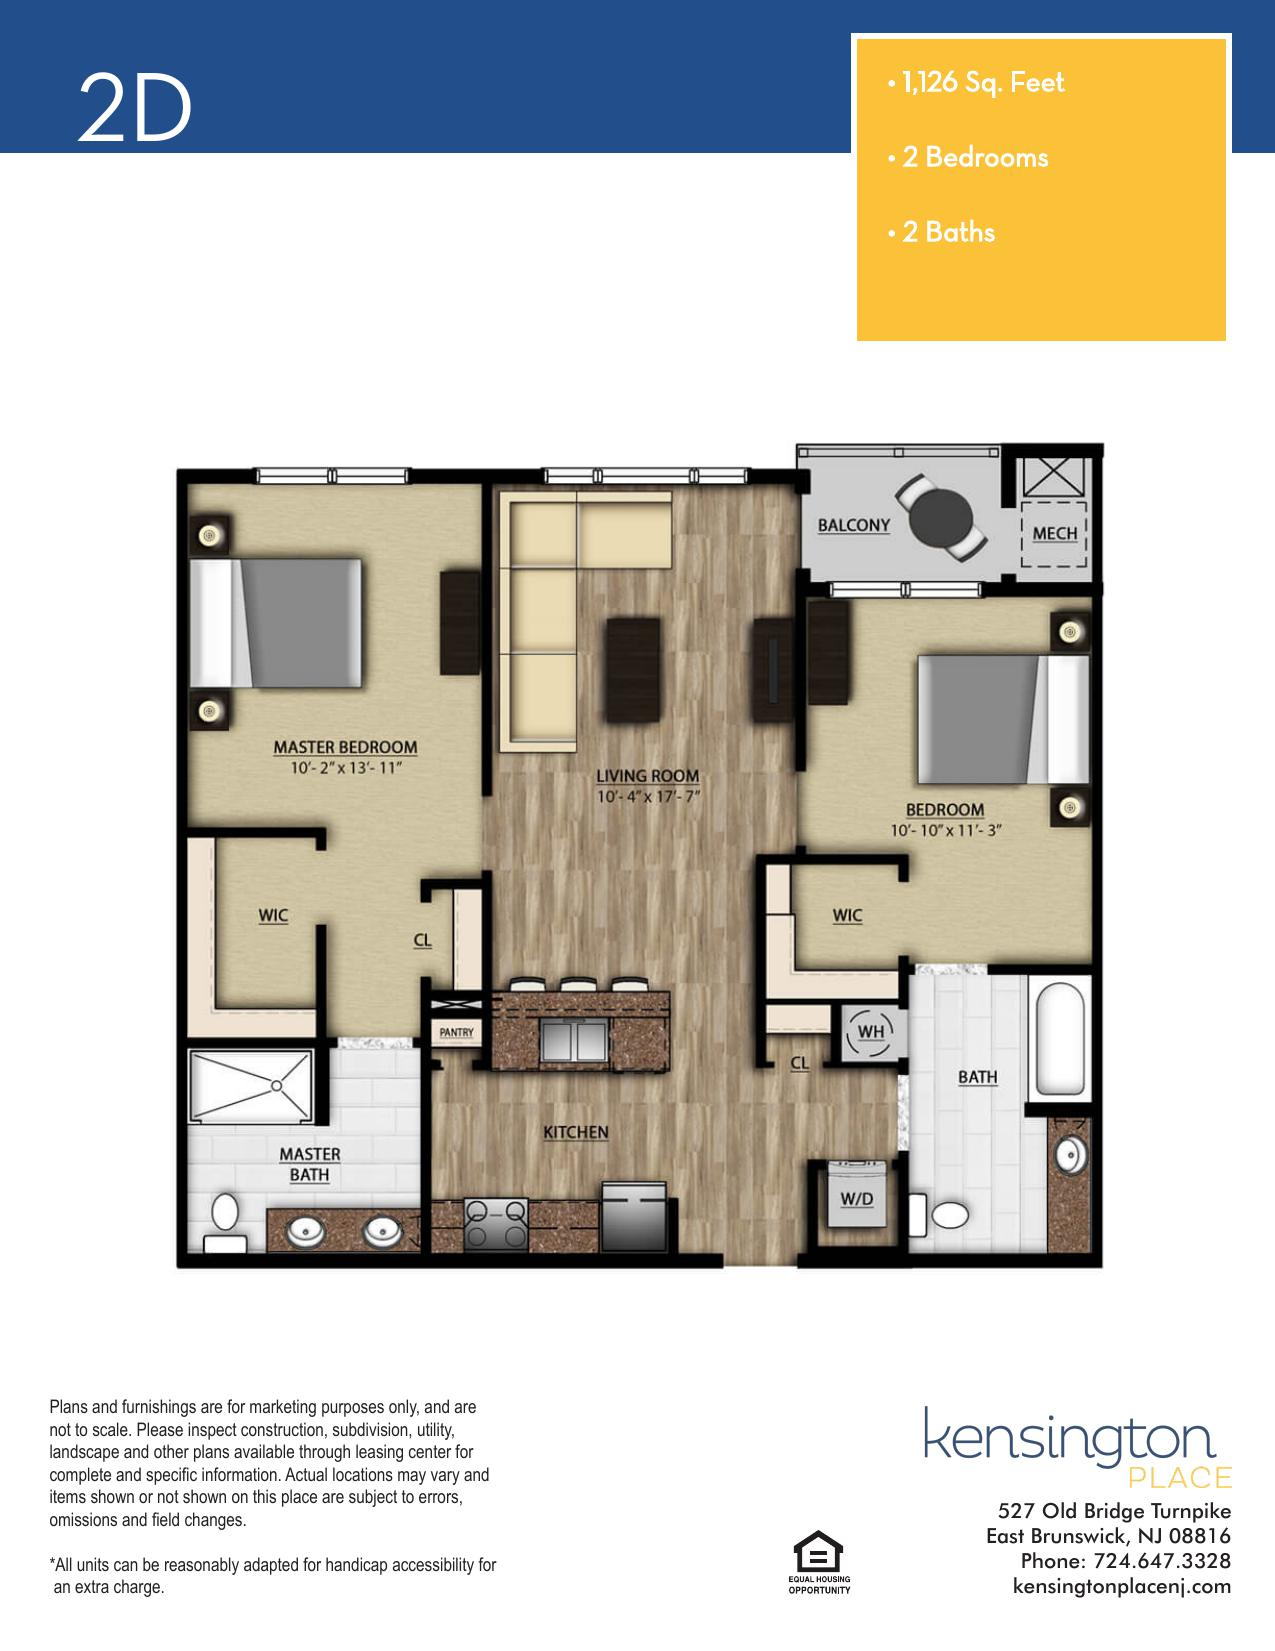 Kensington Place Apartment Floor Plan 2D